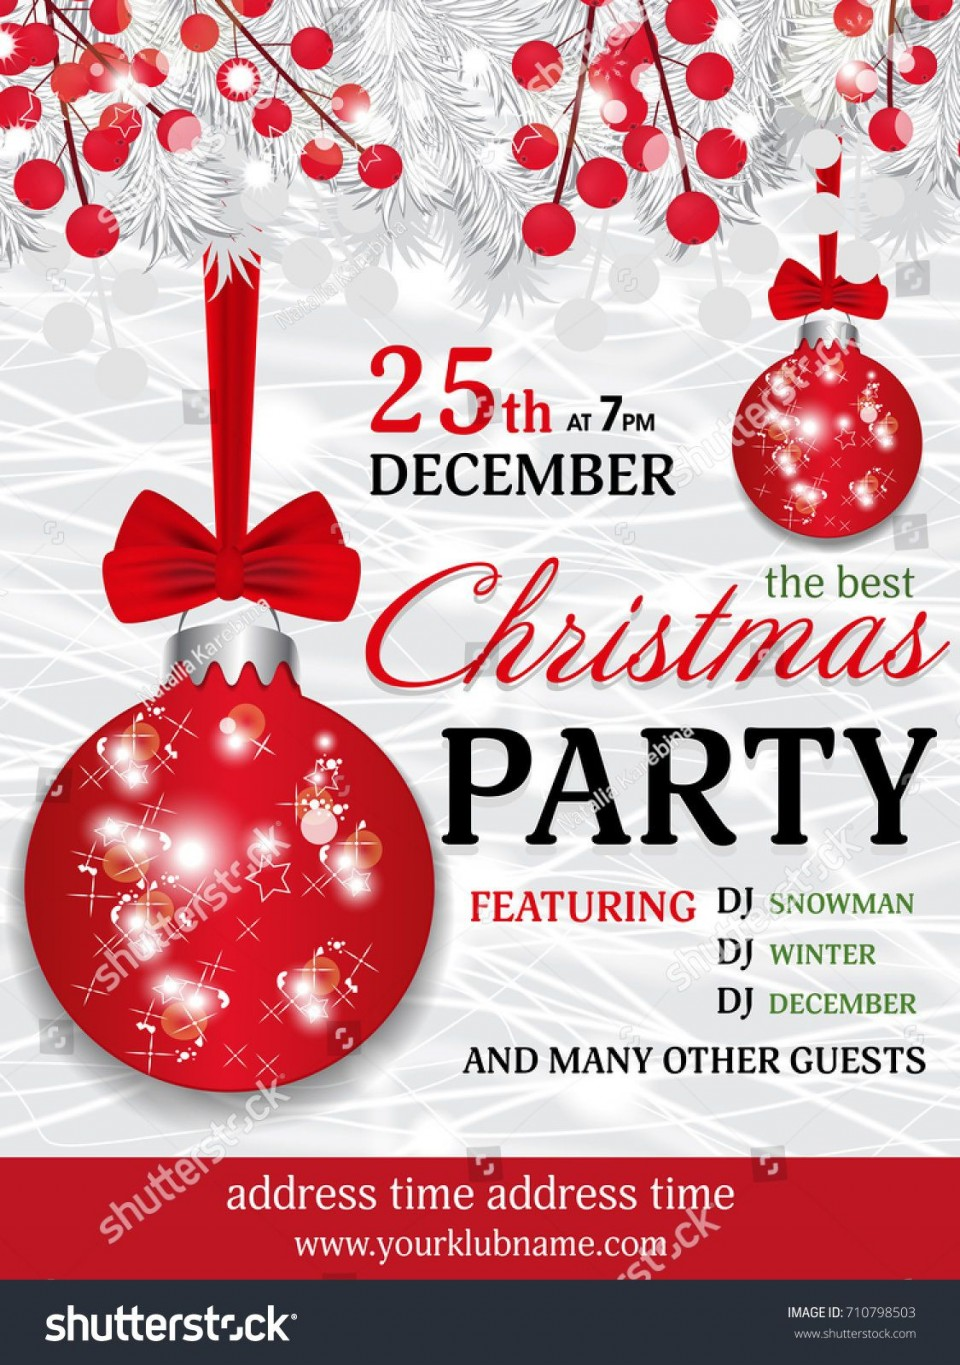 009 Wondrou Christma Party Invitation Template Design  Funny Free Download Word Card960